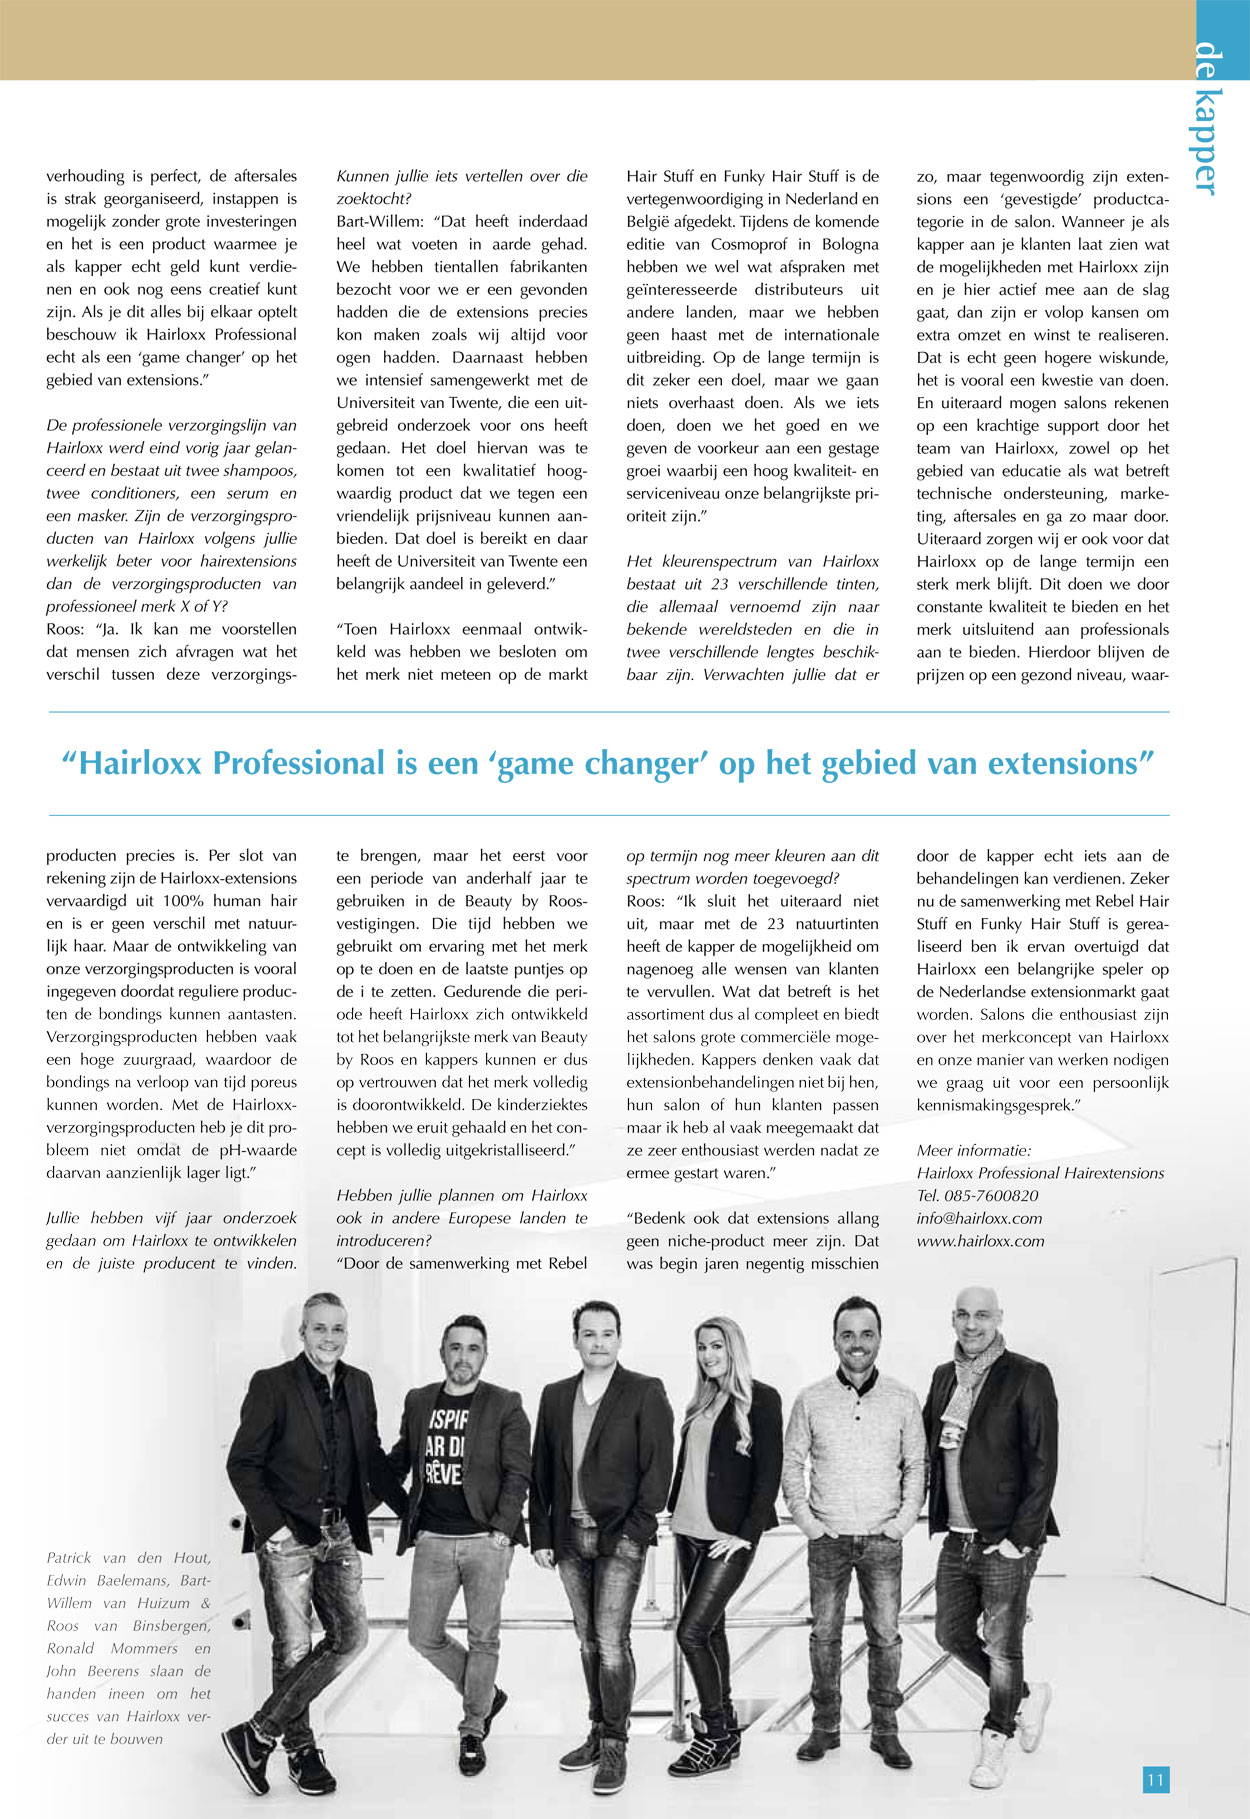 Hairloxx professional in vakblad De Kapper